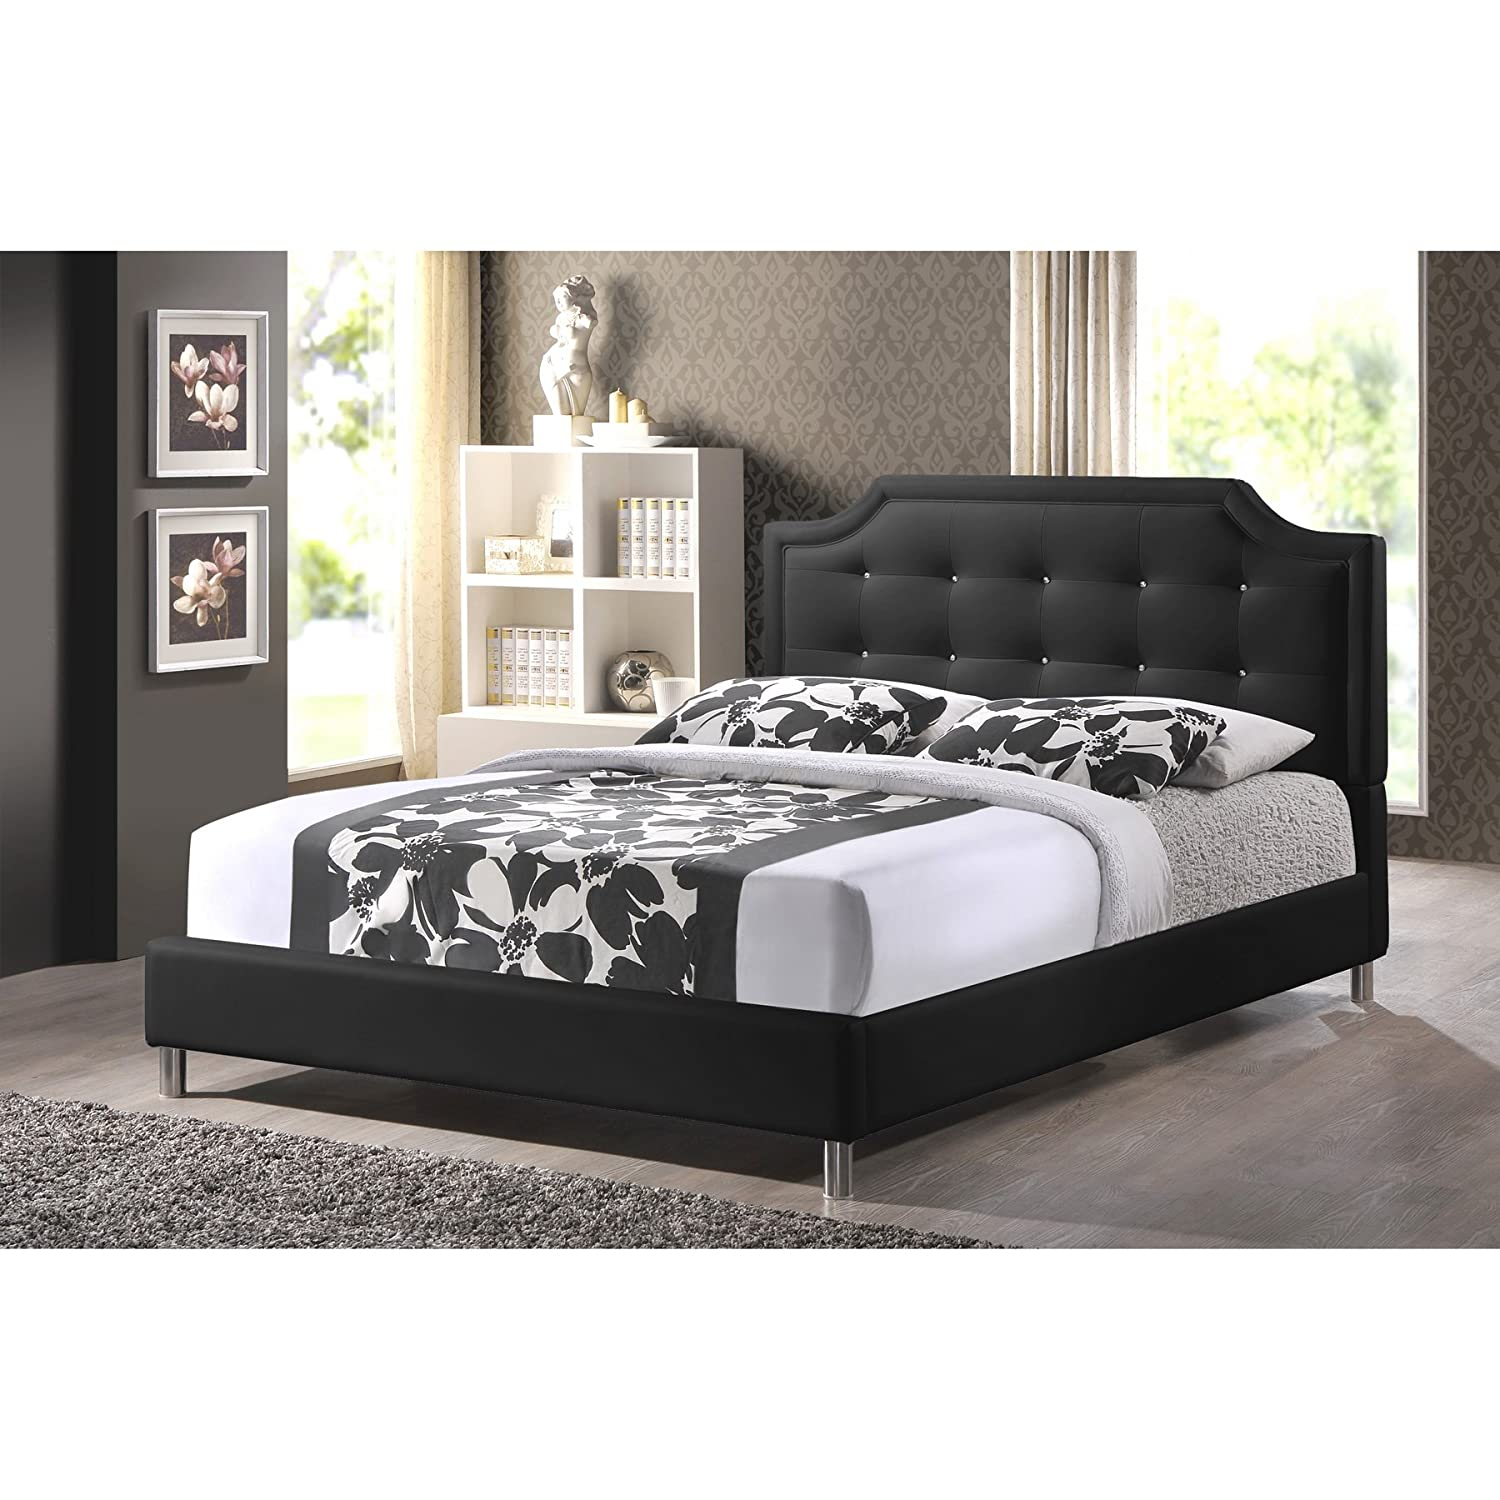 amazoncom baxton studio carlotta modern bed with upholstered  - amazoncom baxton studio carlotta modern bed with upholstered headboardblack  x  x  kitchen  dining